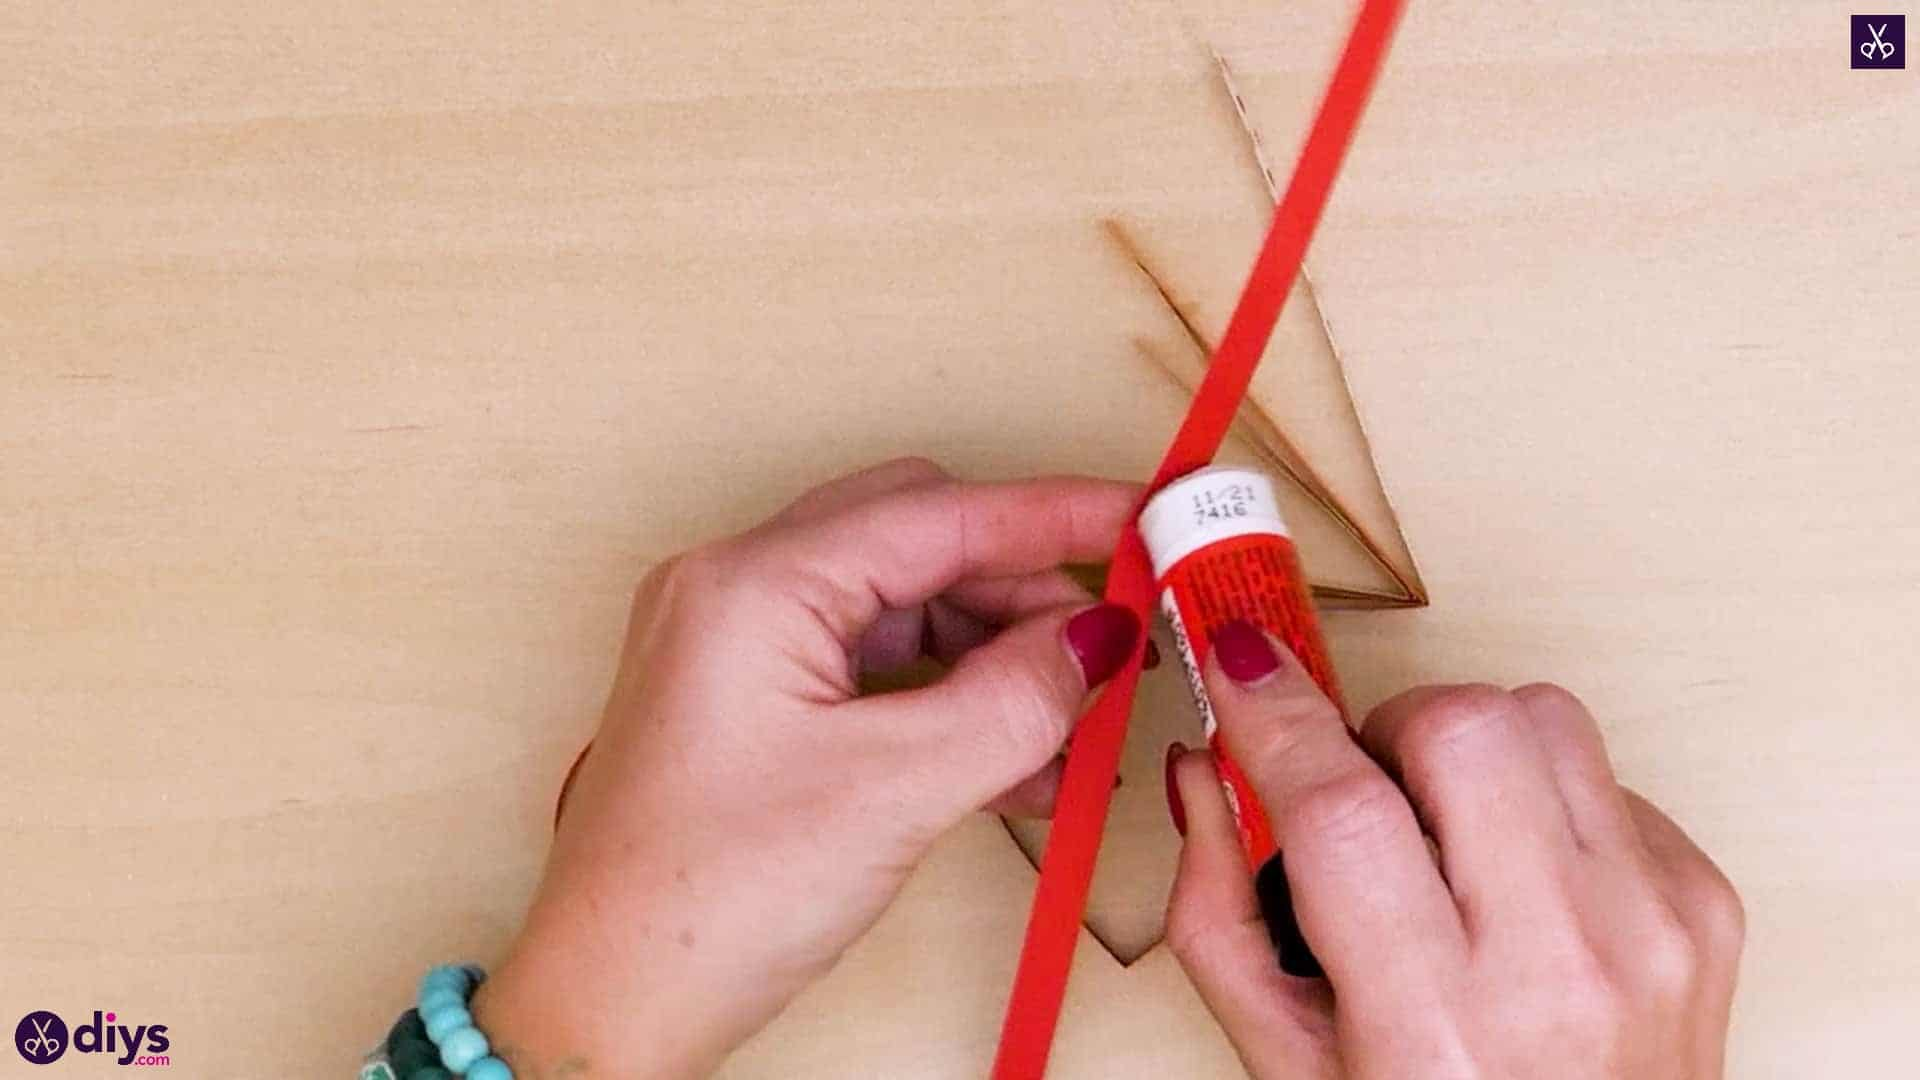 Diy ribbon heart step 6a